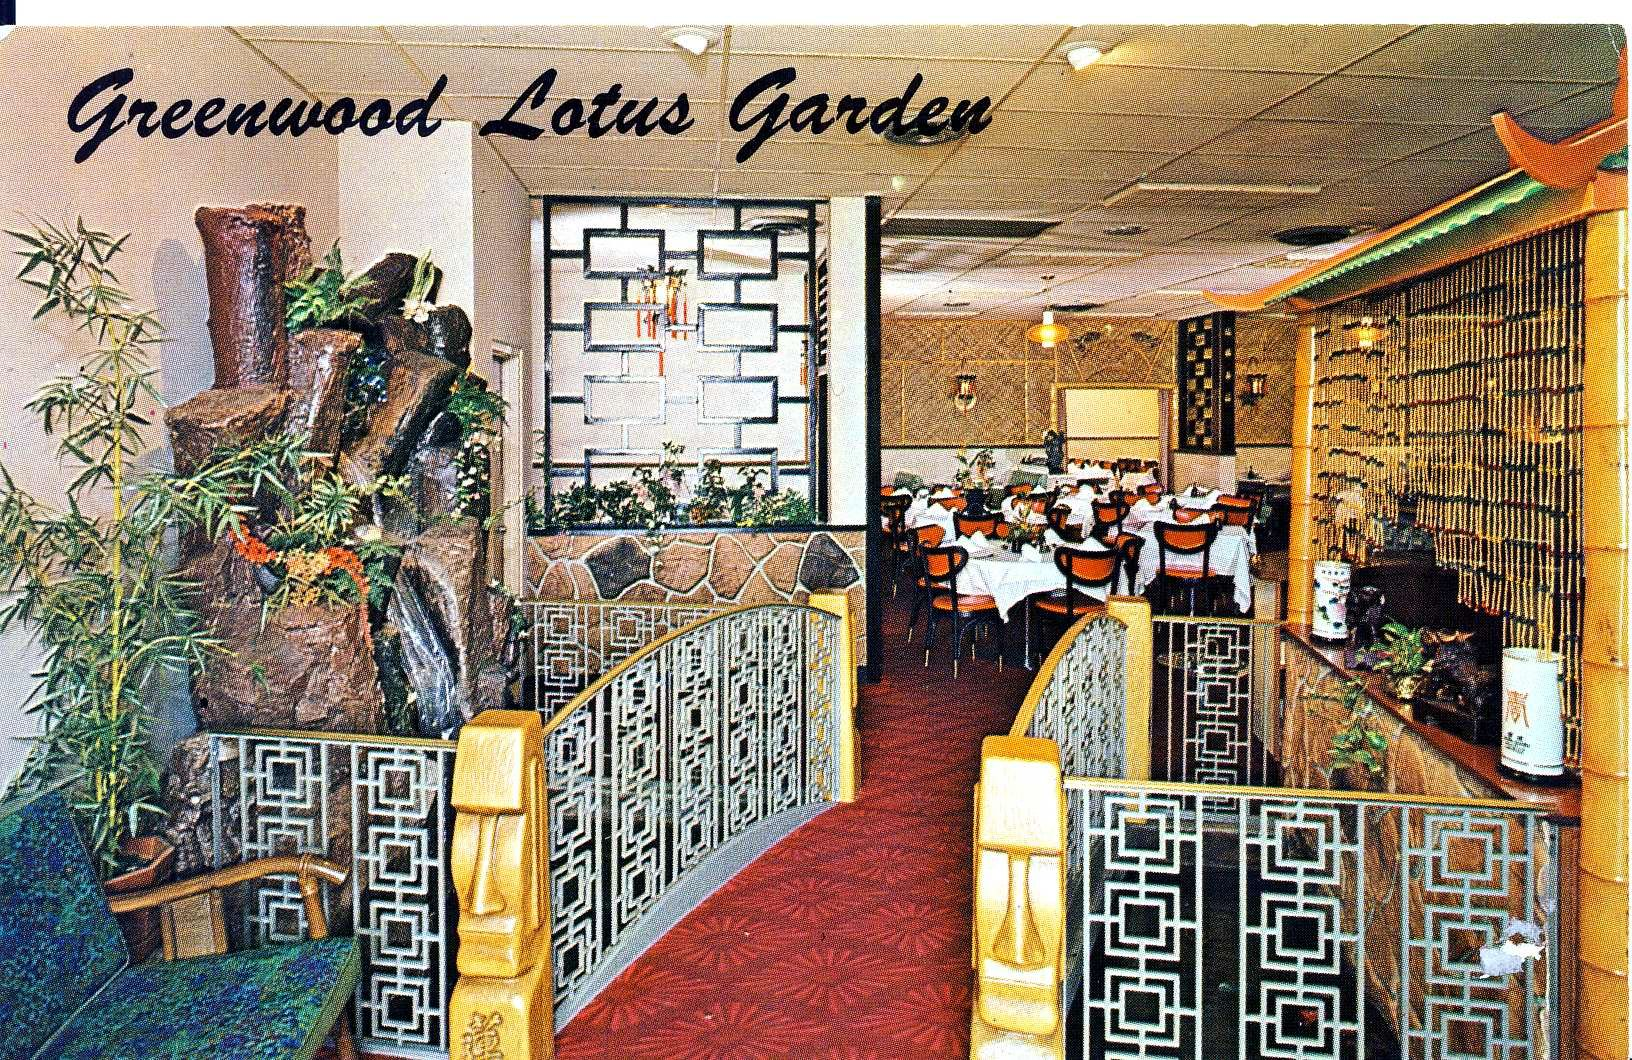 Vintage Postcard From The Lotus Garden Restaurant In Greenwood Indiana. The  Restaurant Is Still In